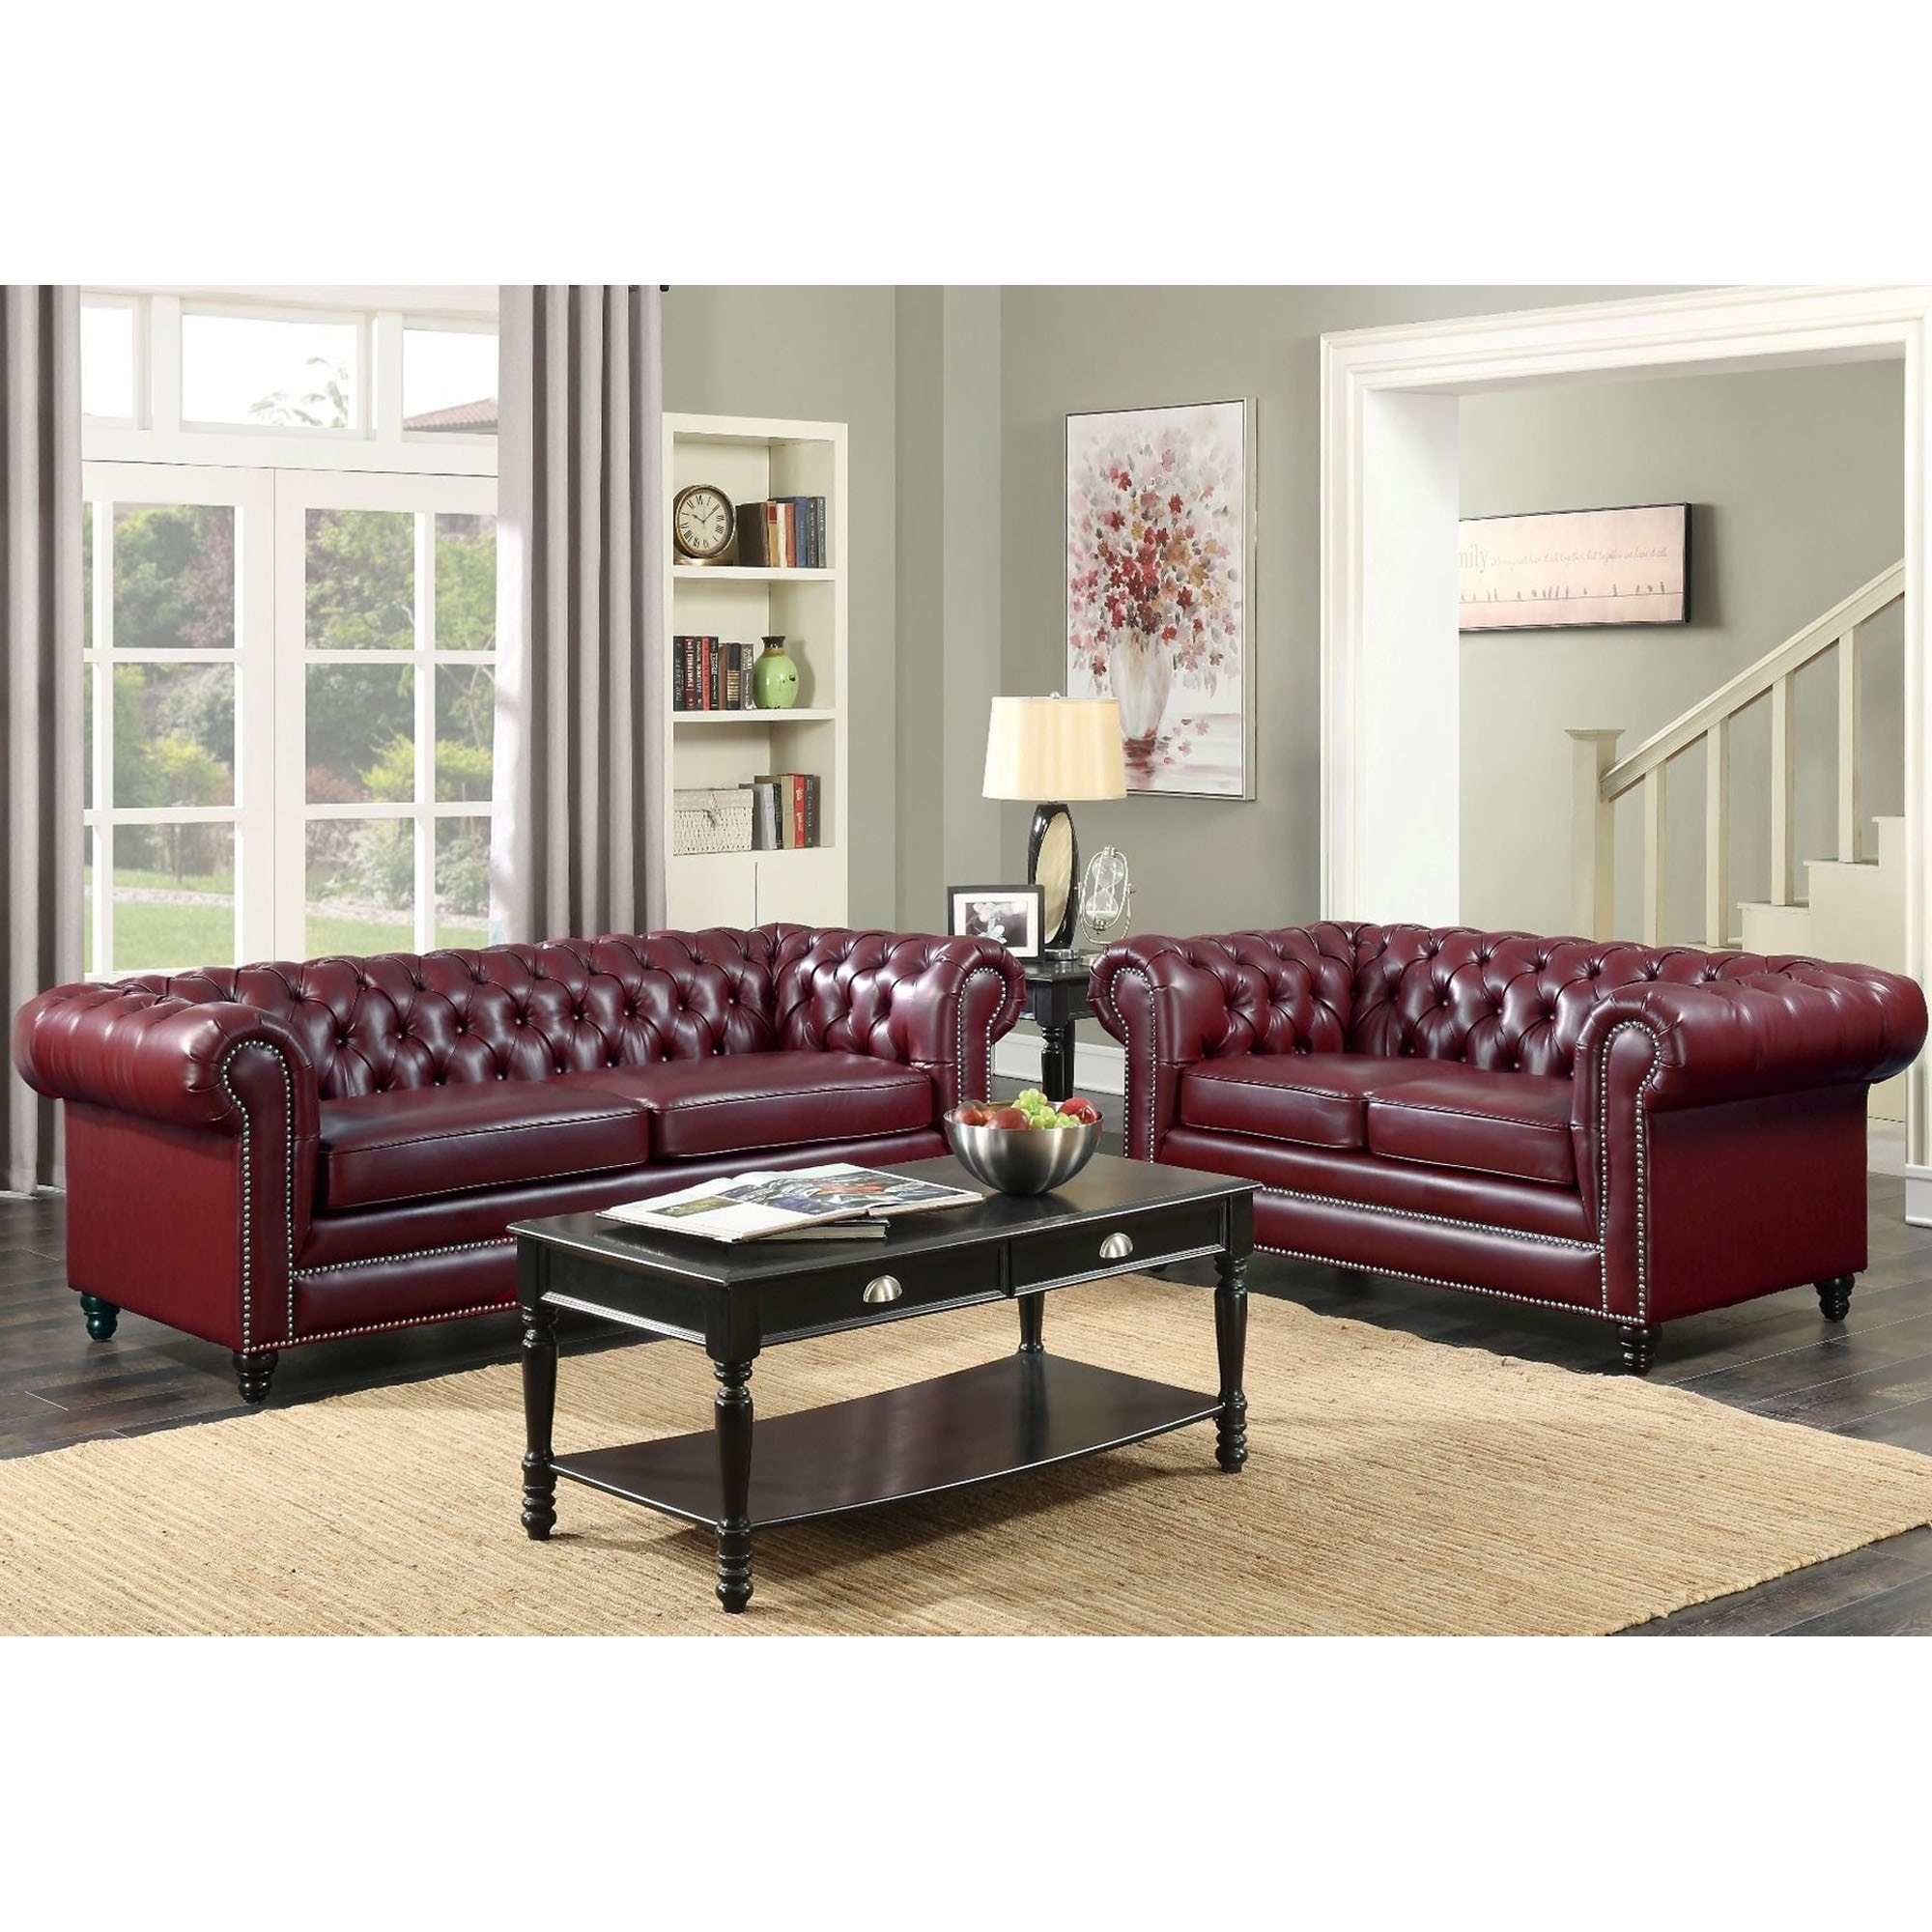 Super Faux Leather Chesterfield 3 Seater Sofa Gmtry Best Dining Table And Chair Ideas Images Gmtryco